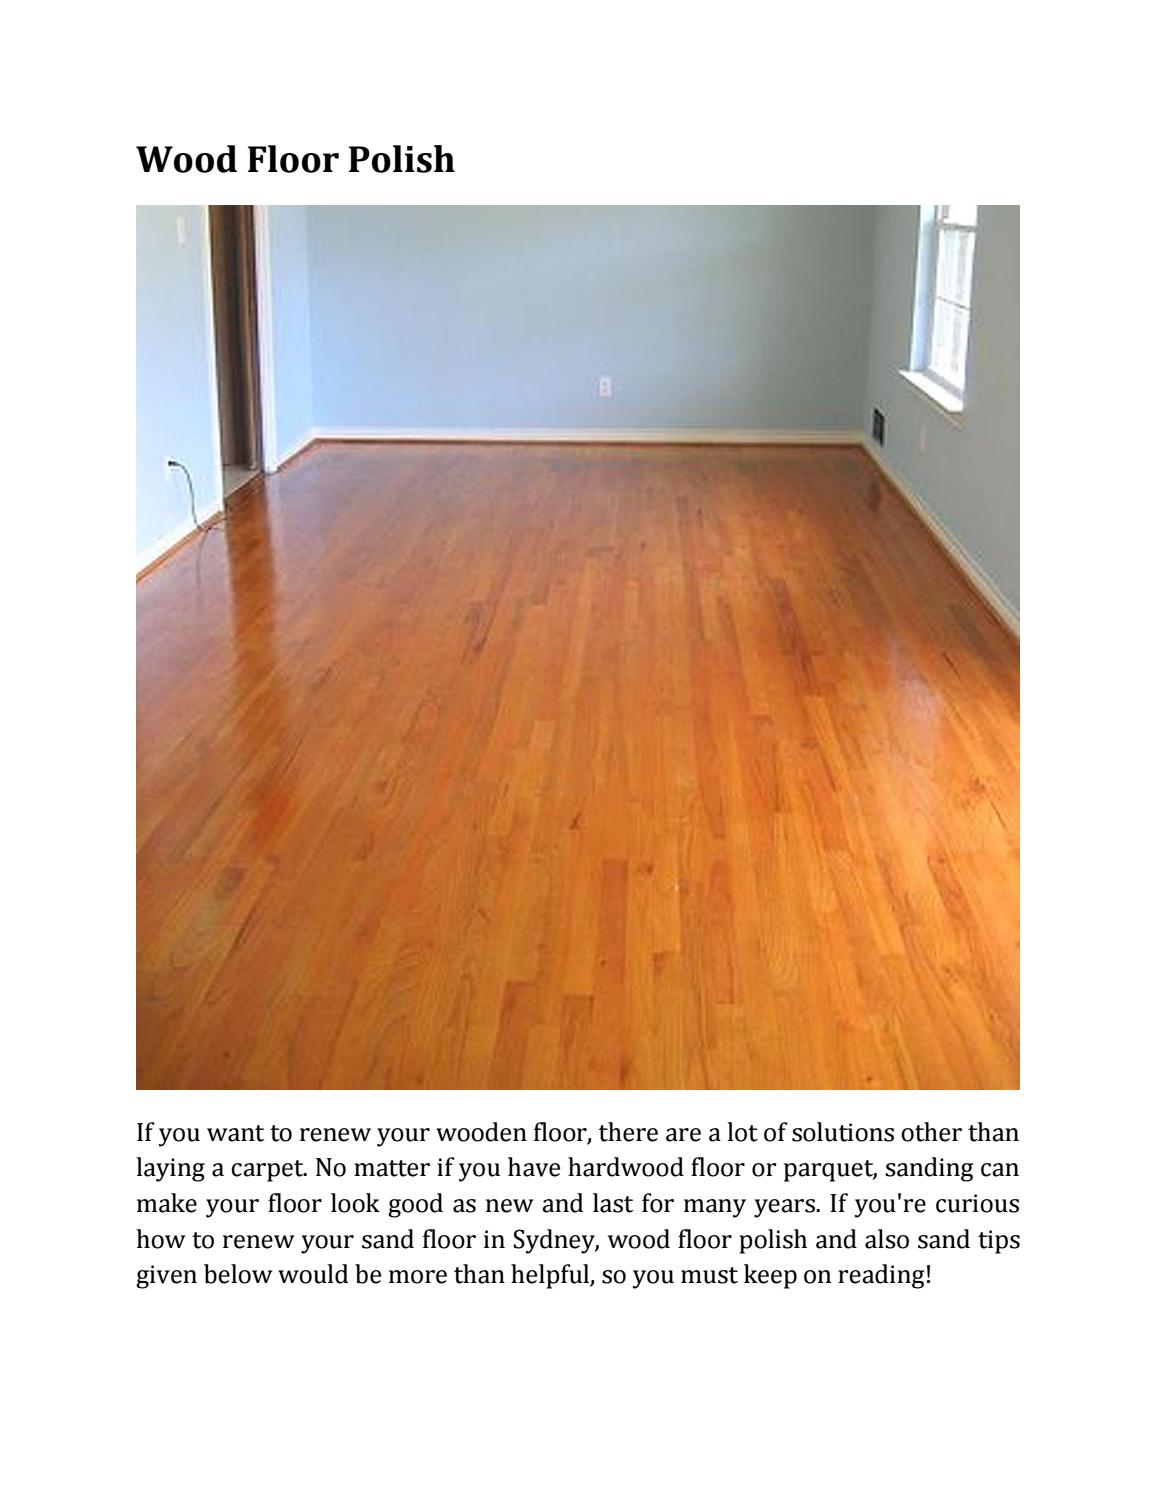 Wood Floor Polish By Ana Jackson Issuu